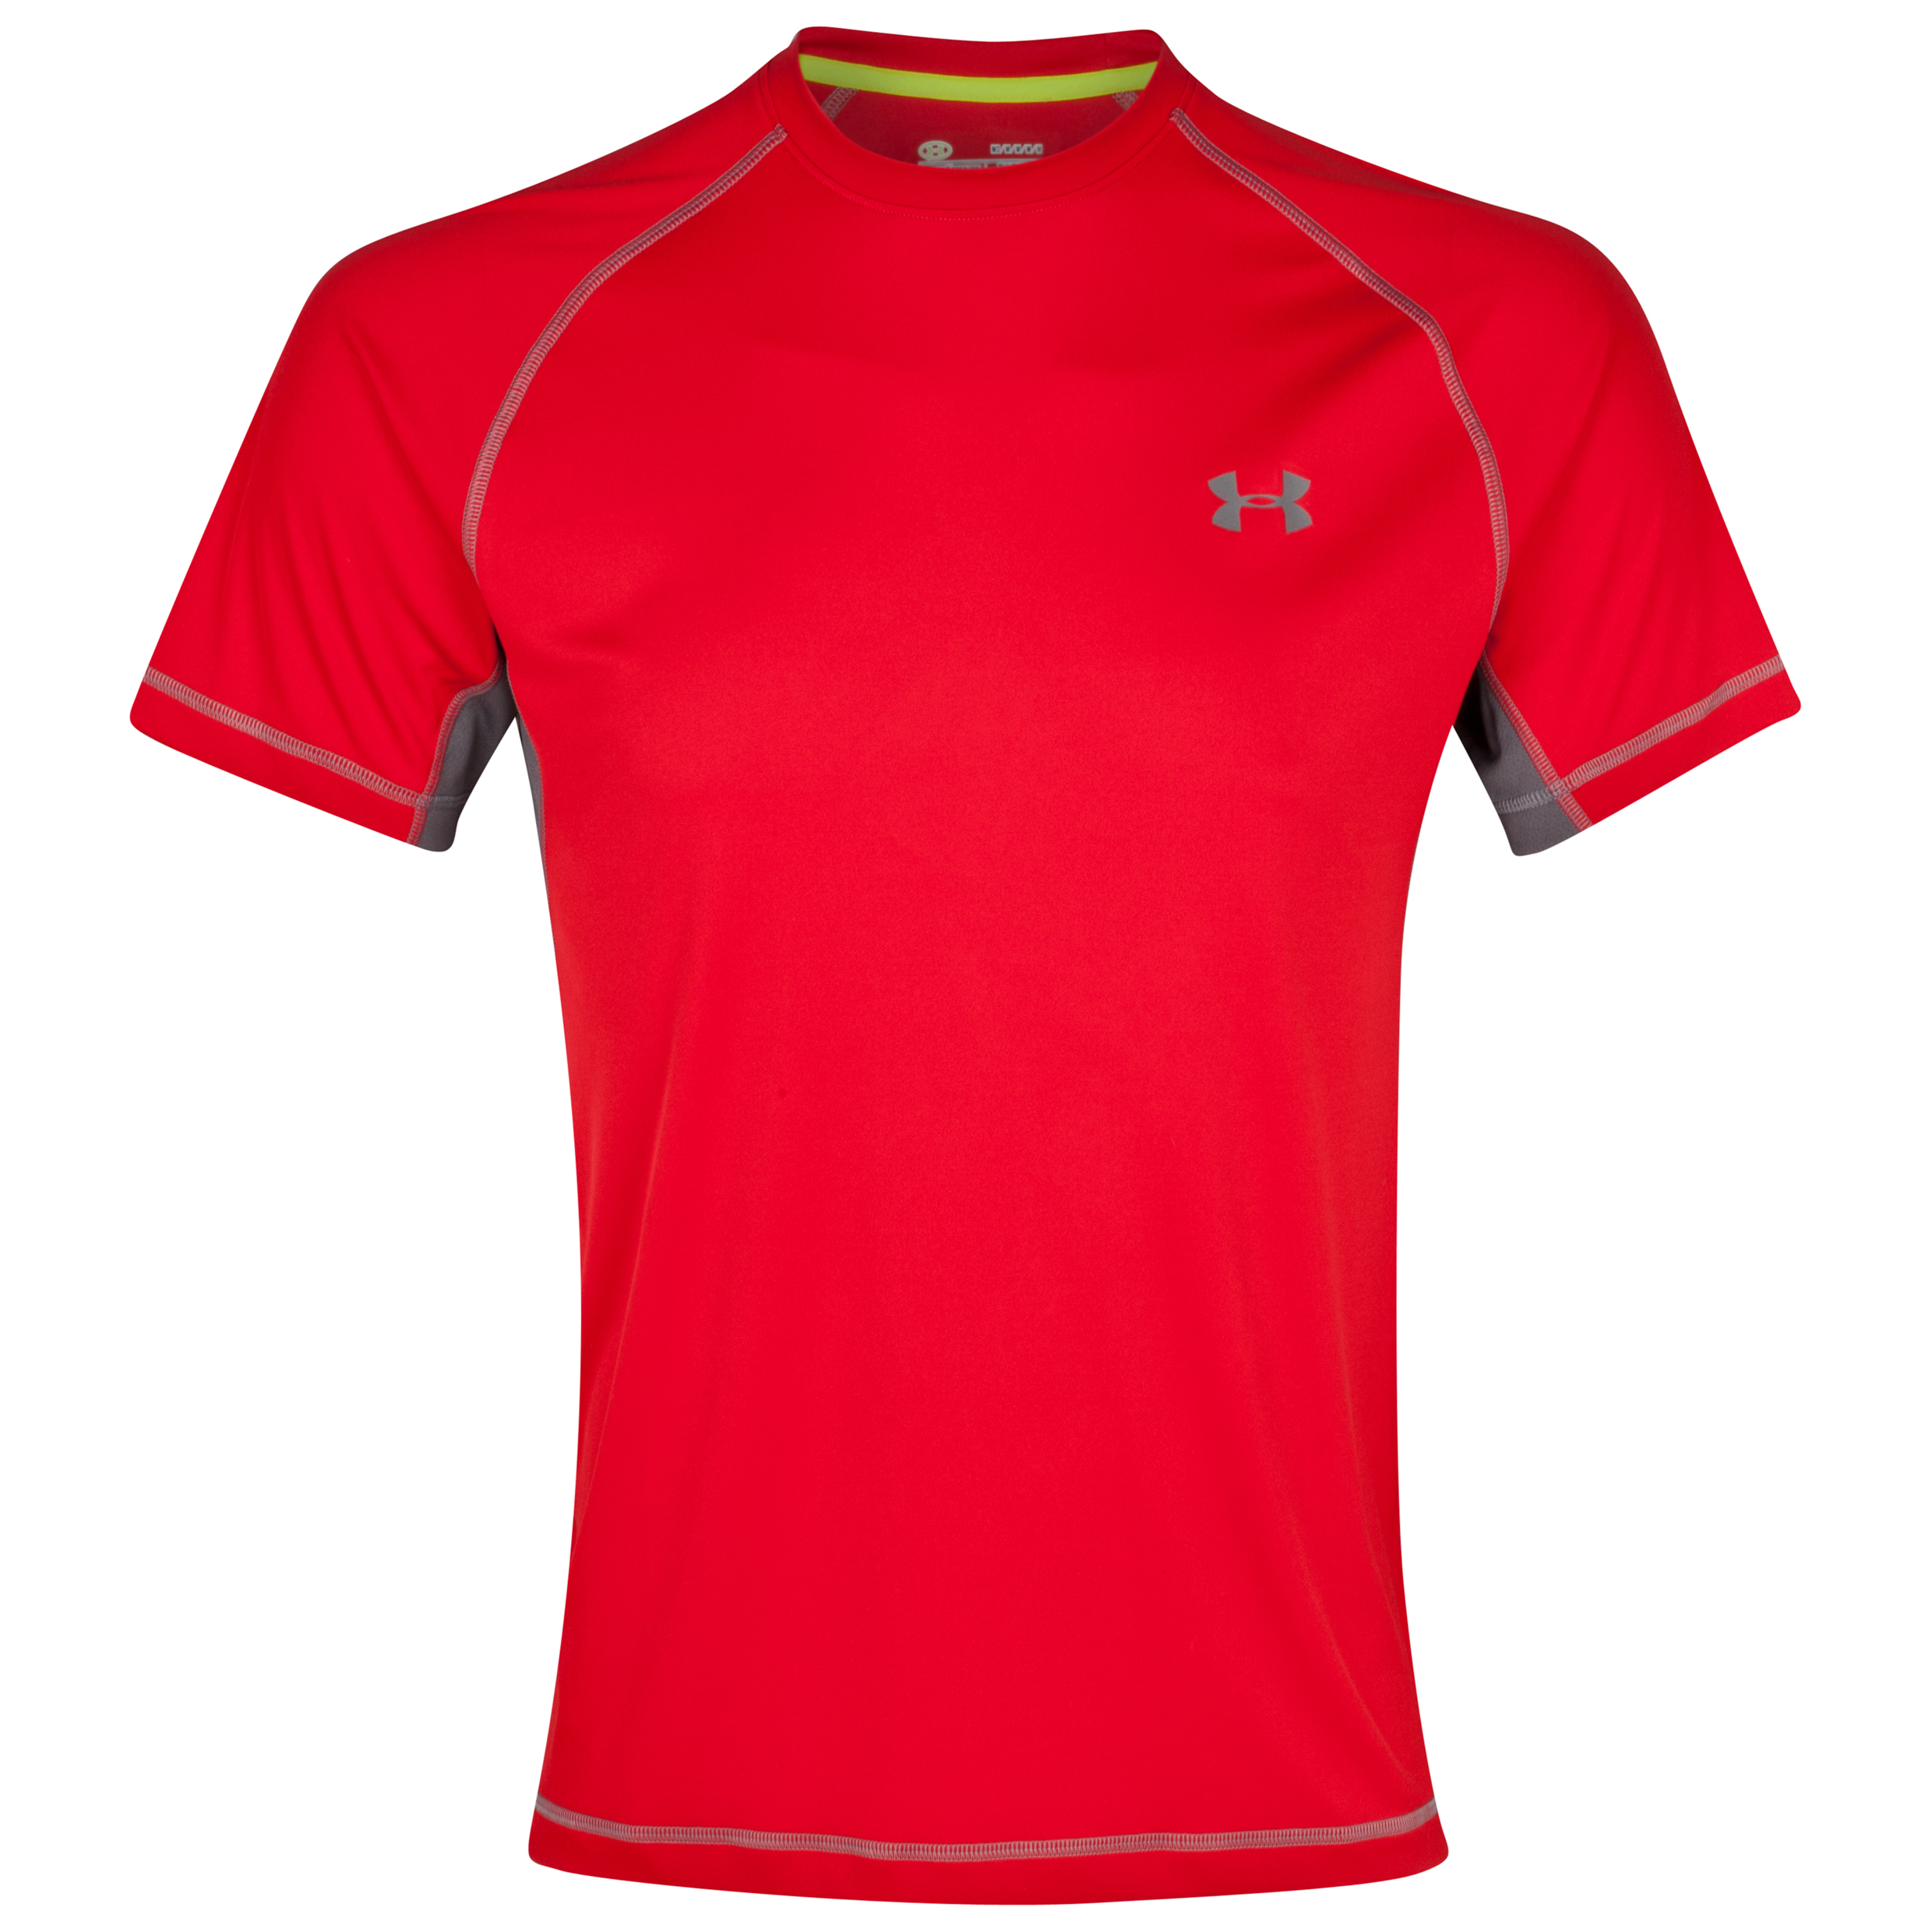 Under Armour Catalyst T-Shirt - Red/Graphite